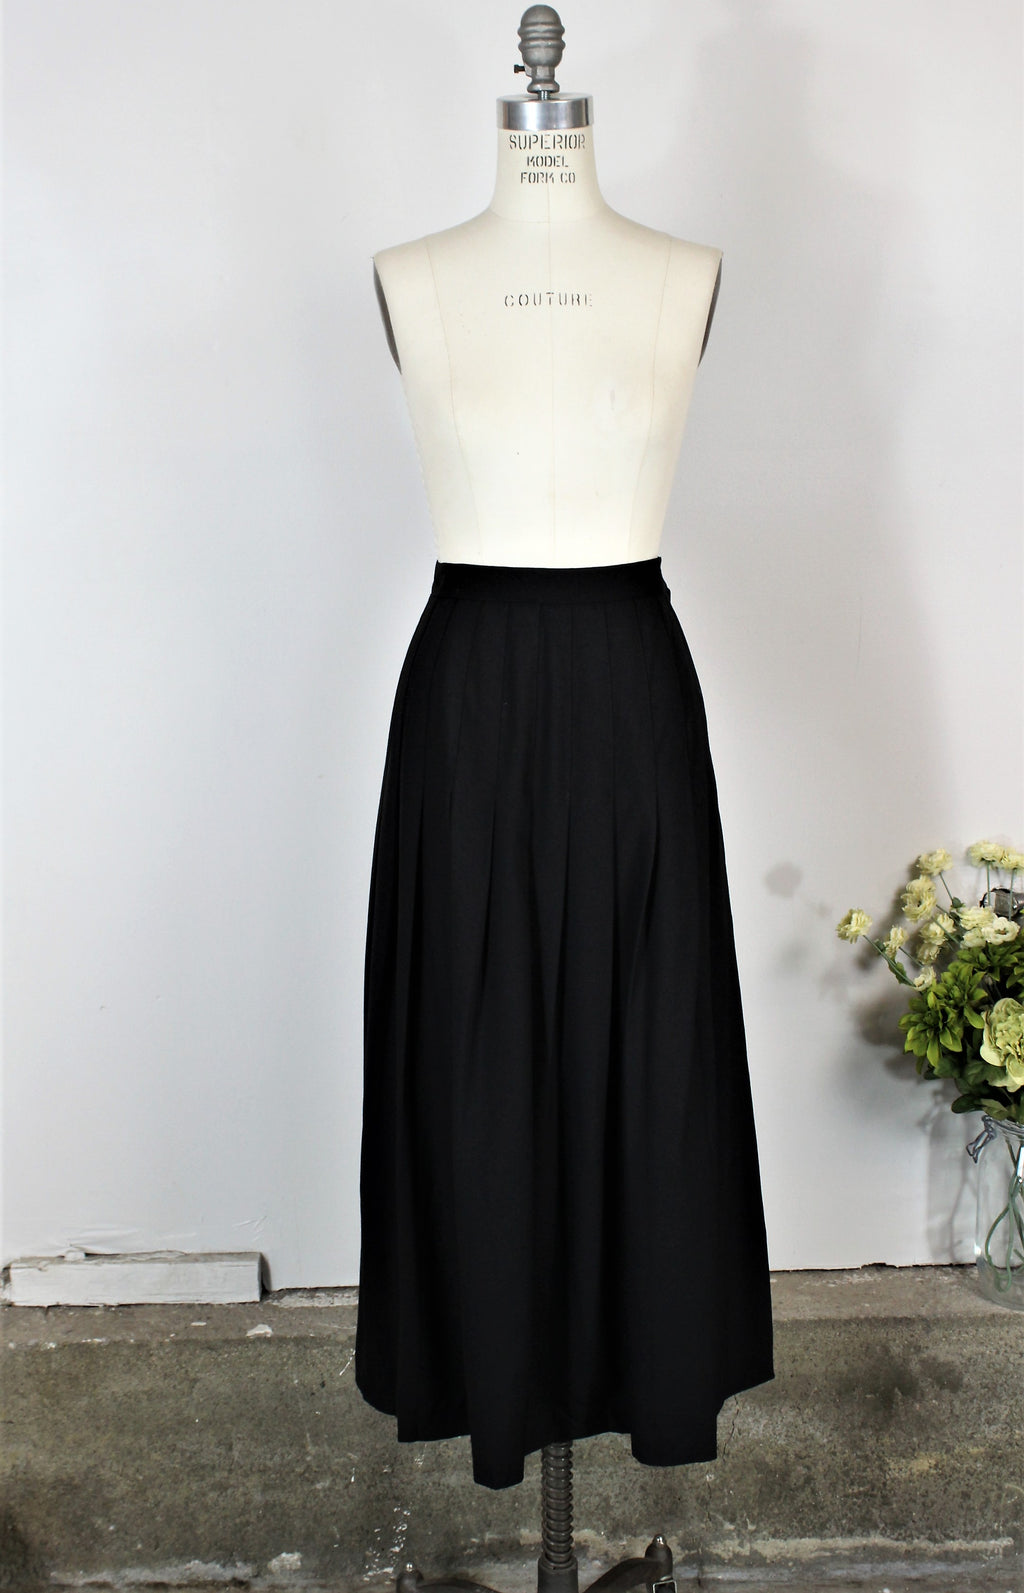 Vintage 1990s Black Pleated Maxi Skirt by Enrico Fratelli